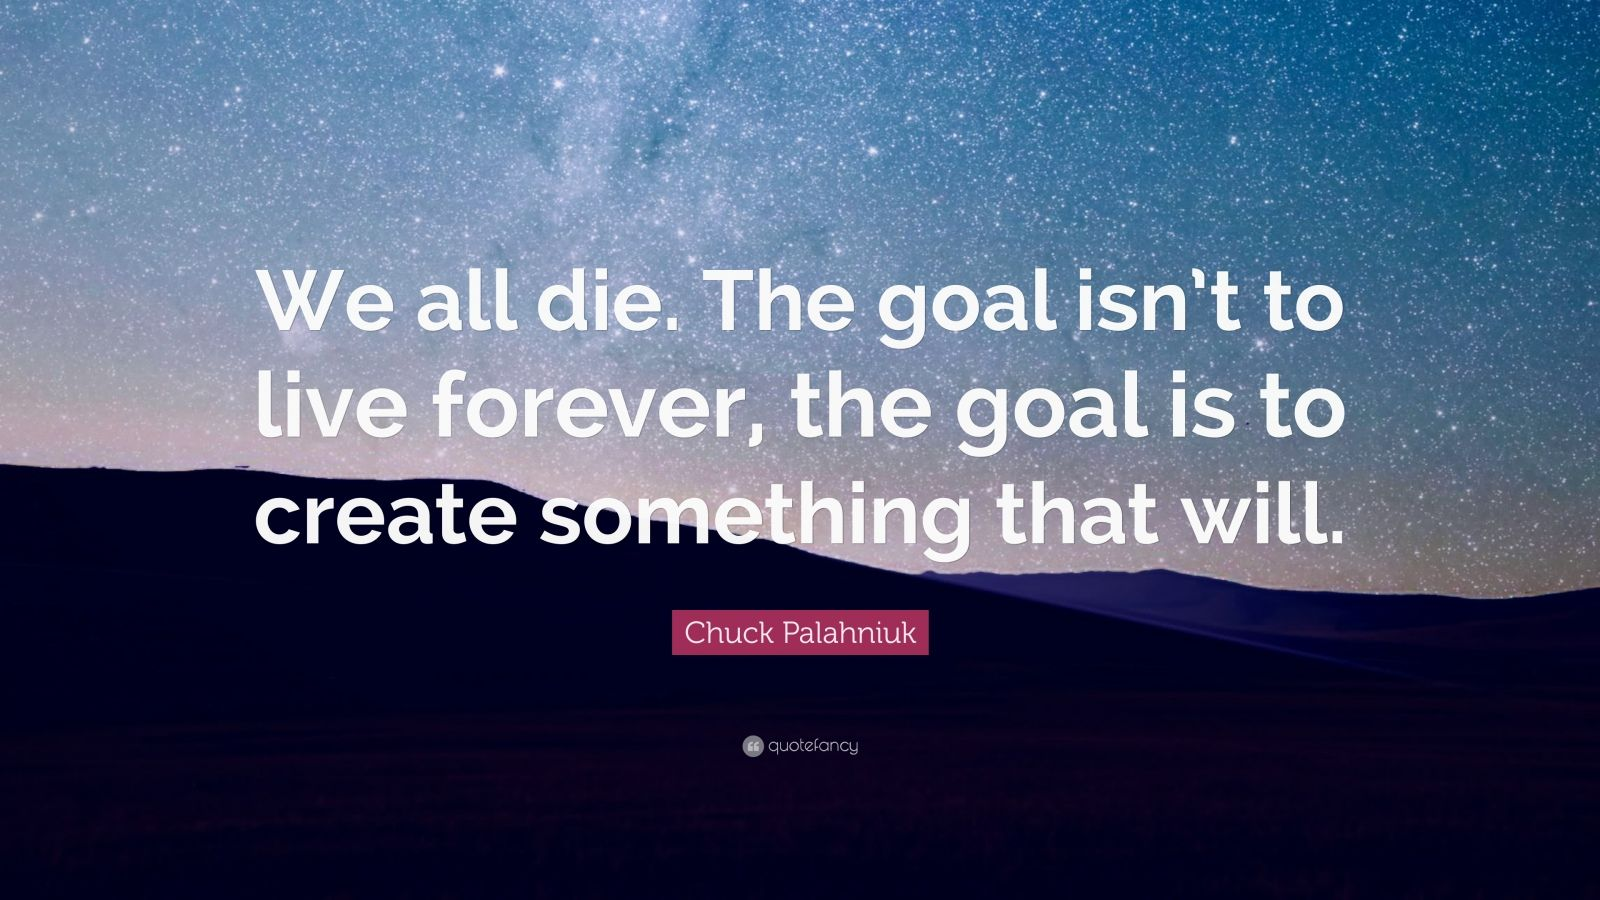 Friendship Forever Quotes Wallpaper Chuck Palahniuk Quote We All Die The Goal Isn T To Live